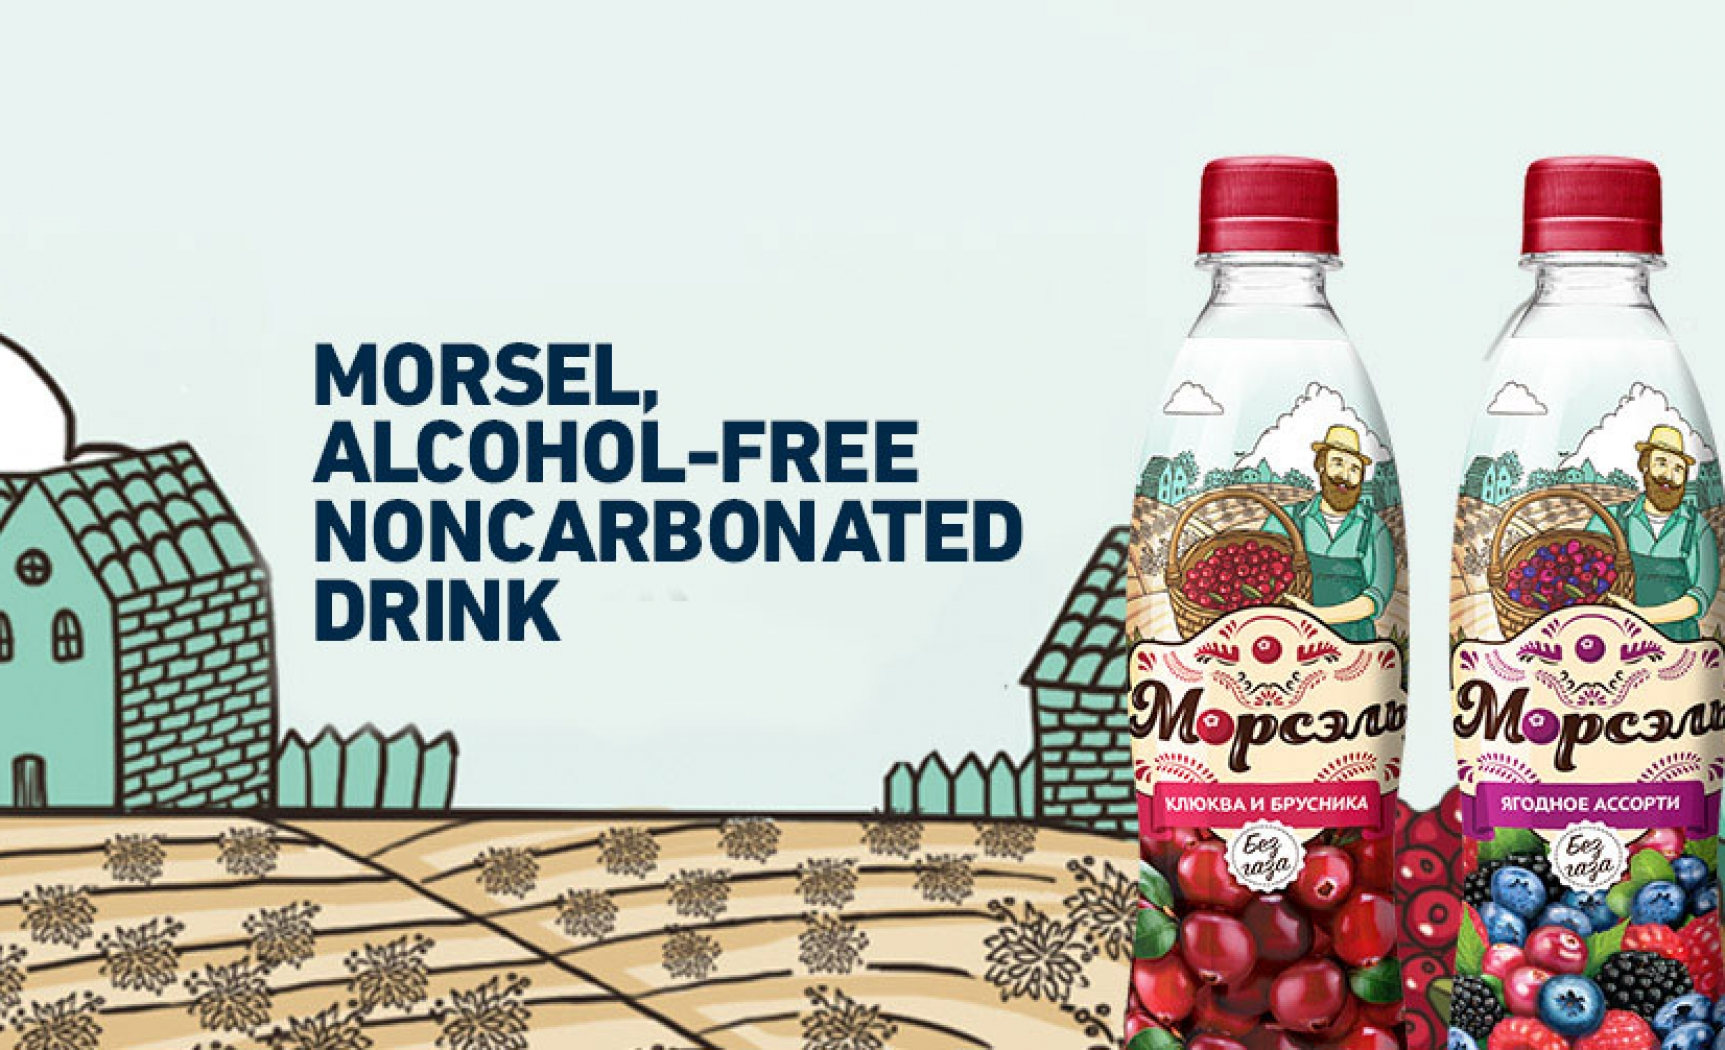 MORSEL, Alcohol-free Noncarbonated Drink